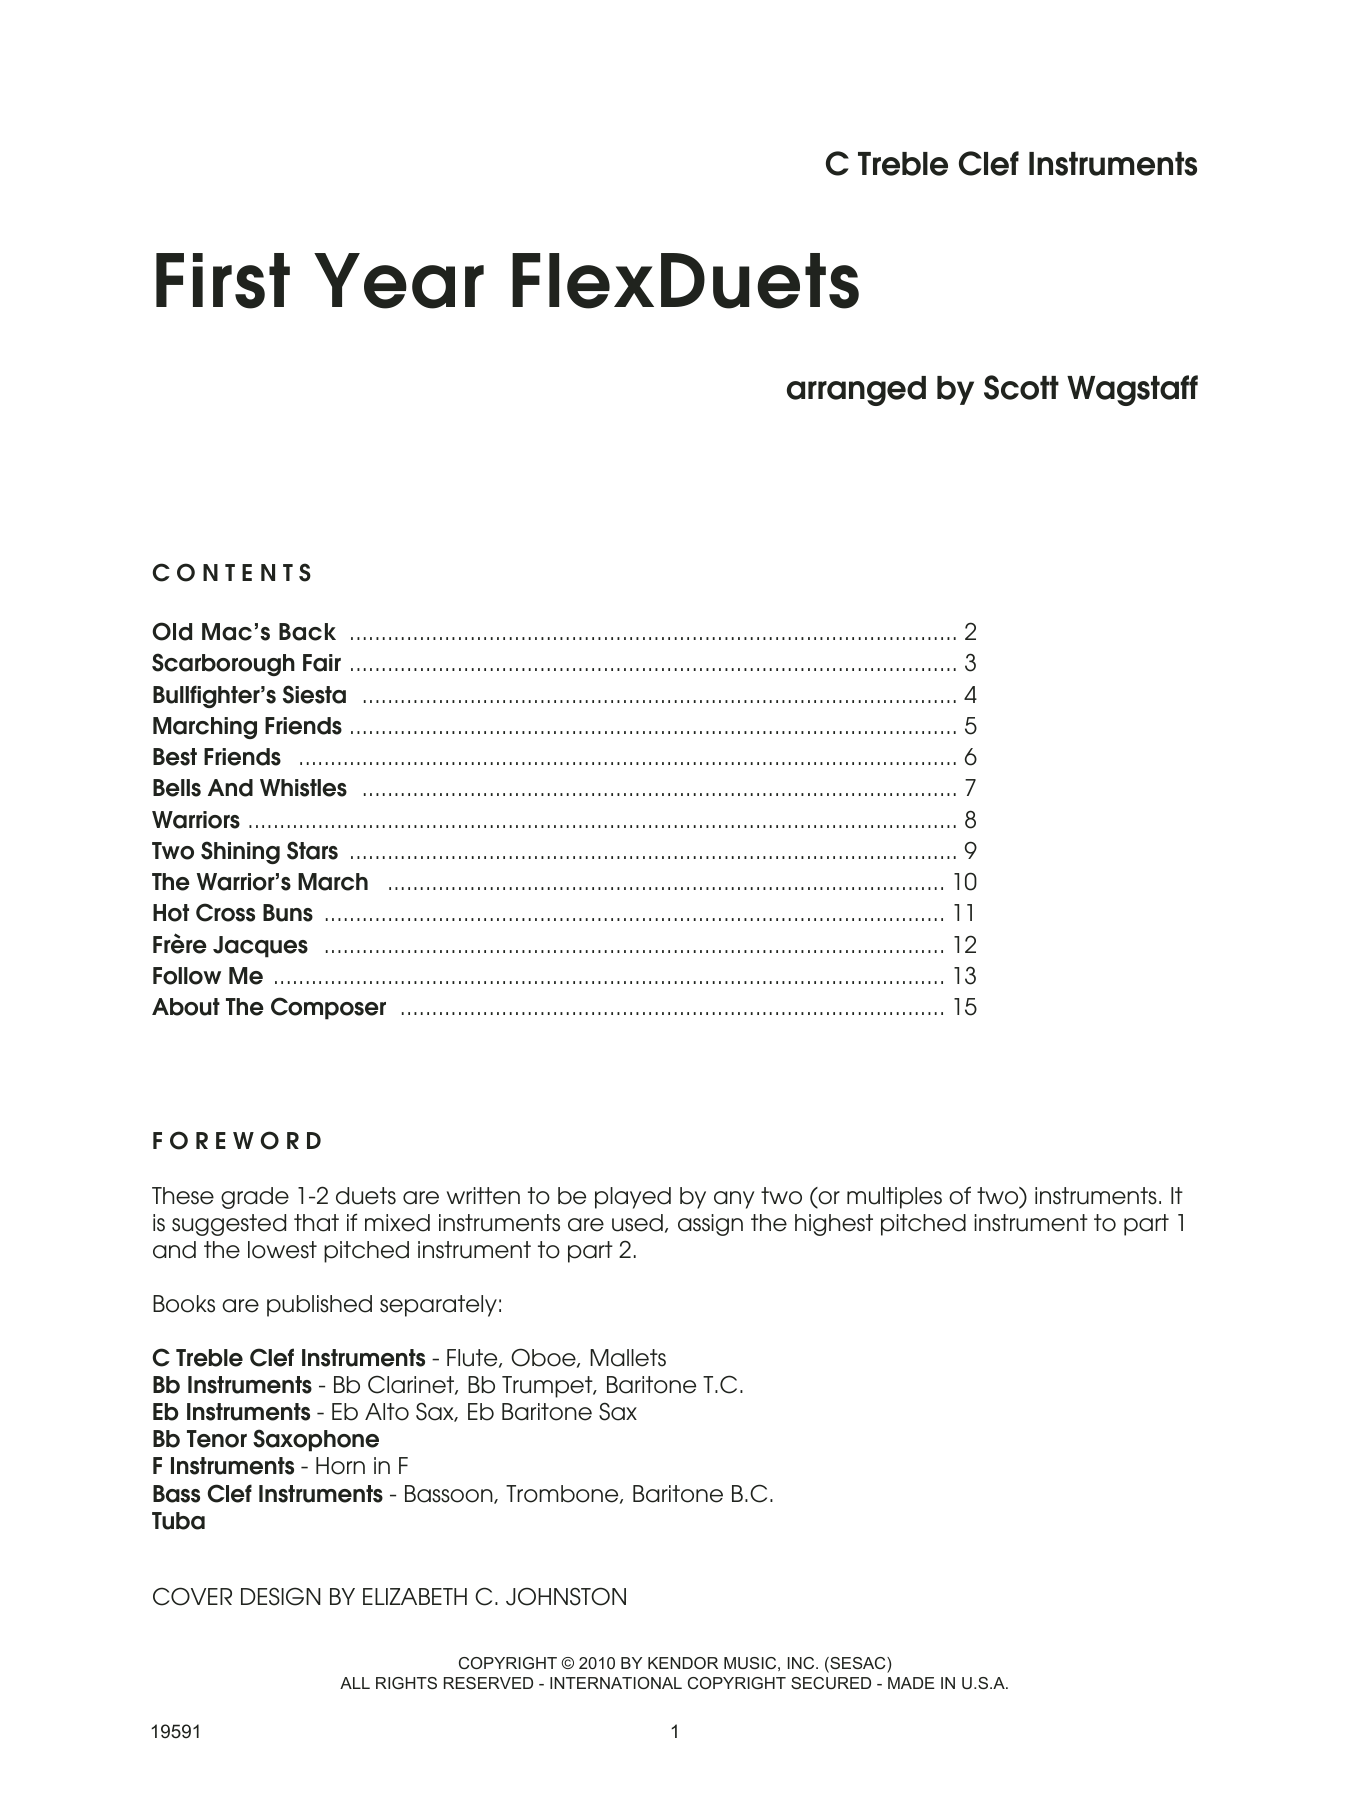 First Year FlexDuets - C Treble Clef Instruments Sheet Music